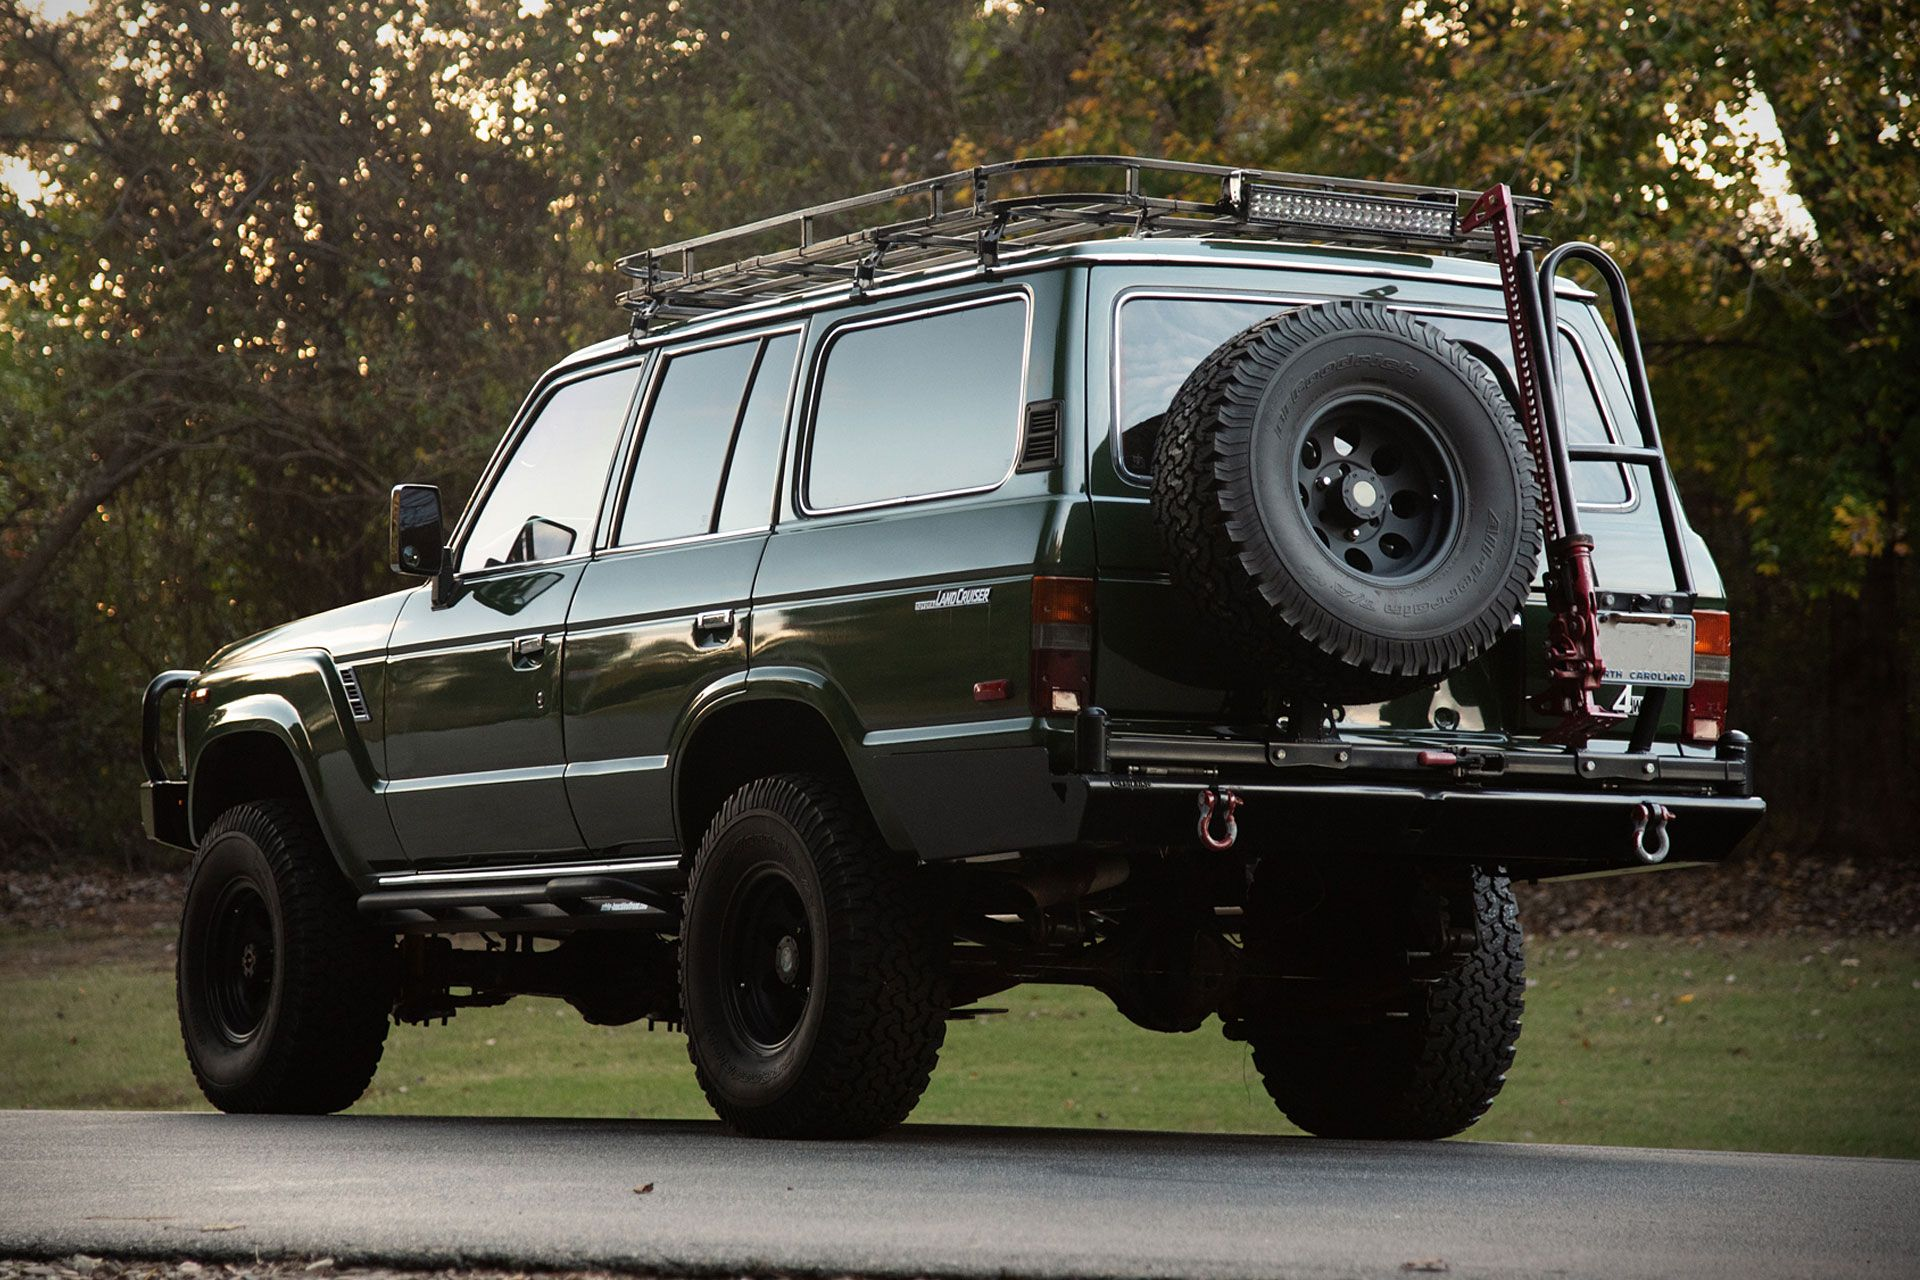 In 1984 Toyota S Land Cruiser Shed Its Jeep Like Roots For A Larger Four Door Wagon Body Style Th Toyota Land Cruiser Land Cruiser Toyota Land Cruiser Prado